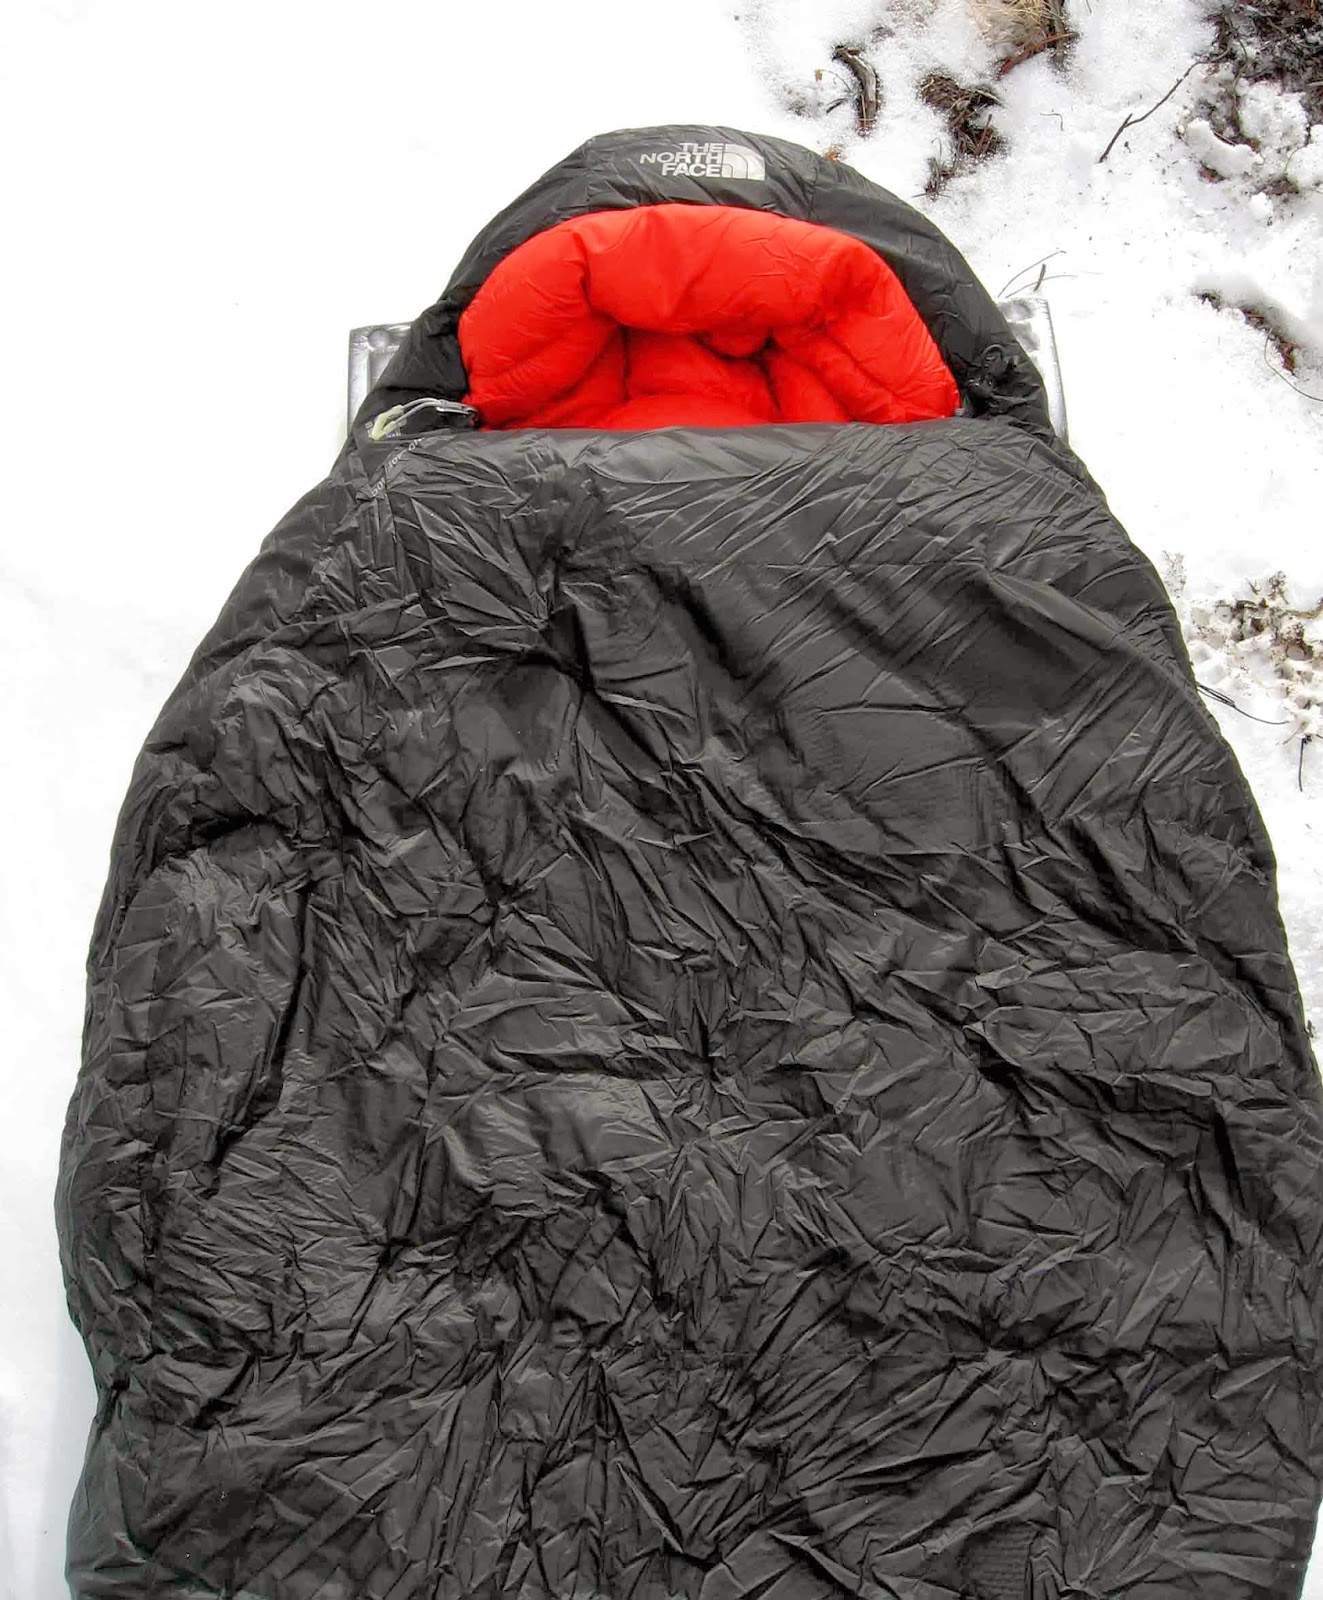 Featuring A Healthy 850 Fill Goose Down Waterproof 20 Denier Pertex Endurance Shell Generous Draft Collar And An Expedition Fit The Inferno